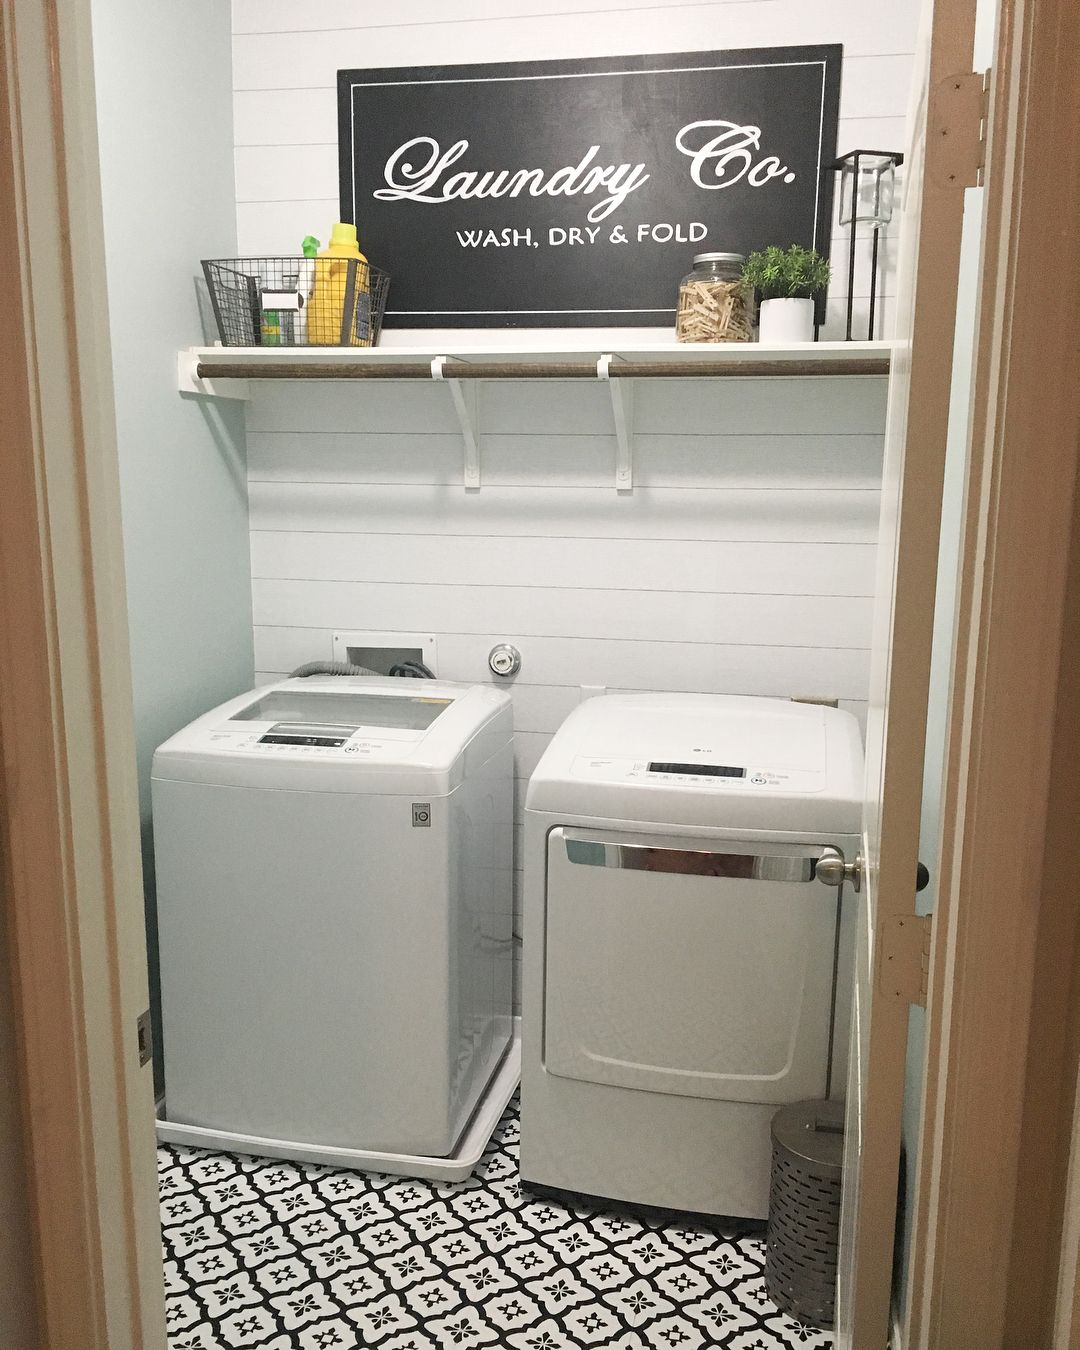 Laundry Room Makeover Using Peel And Stick Floor Tiles From